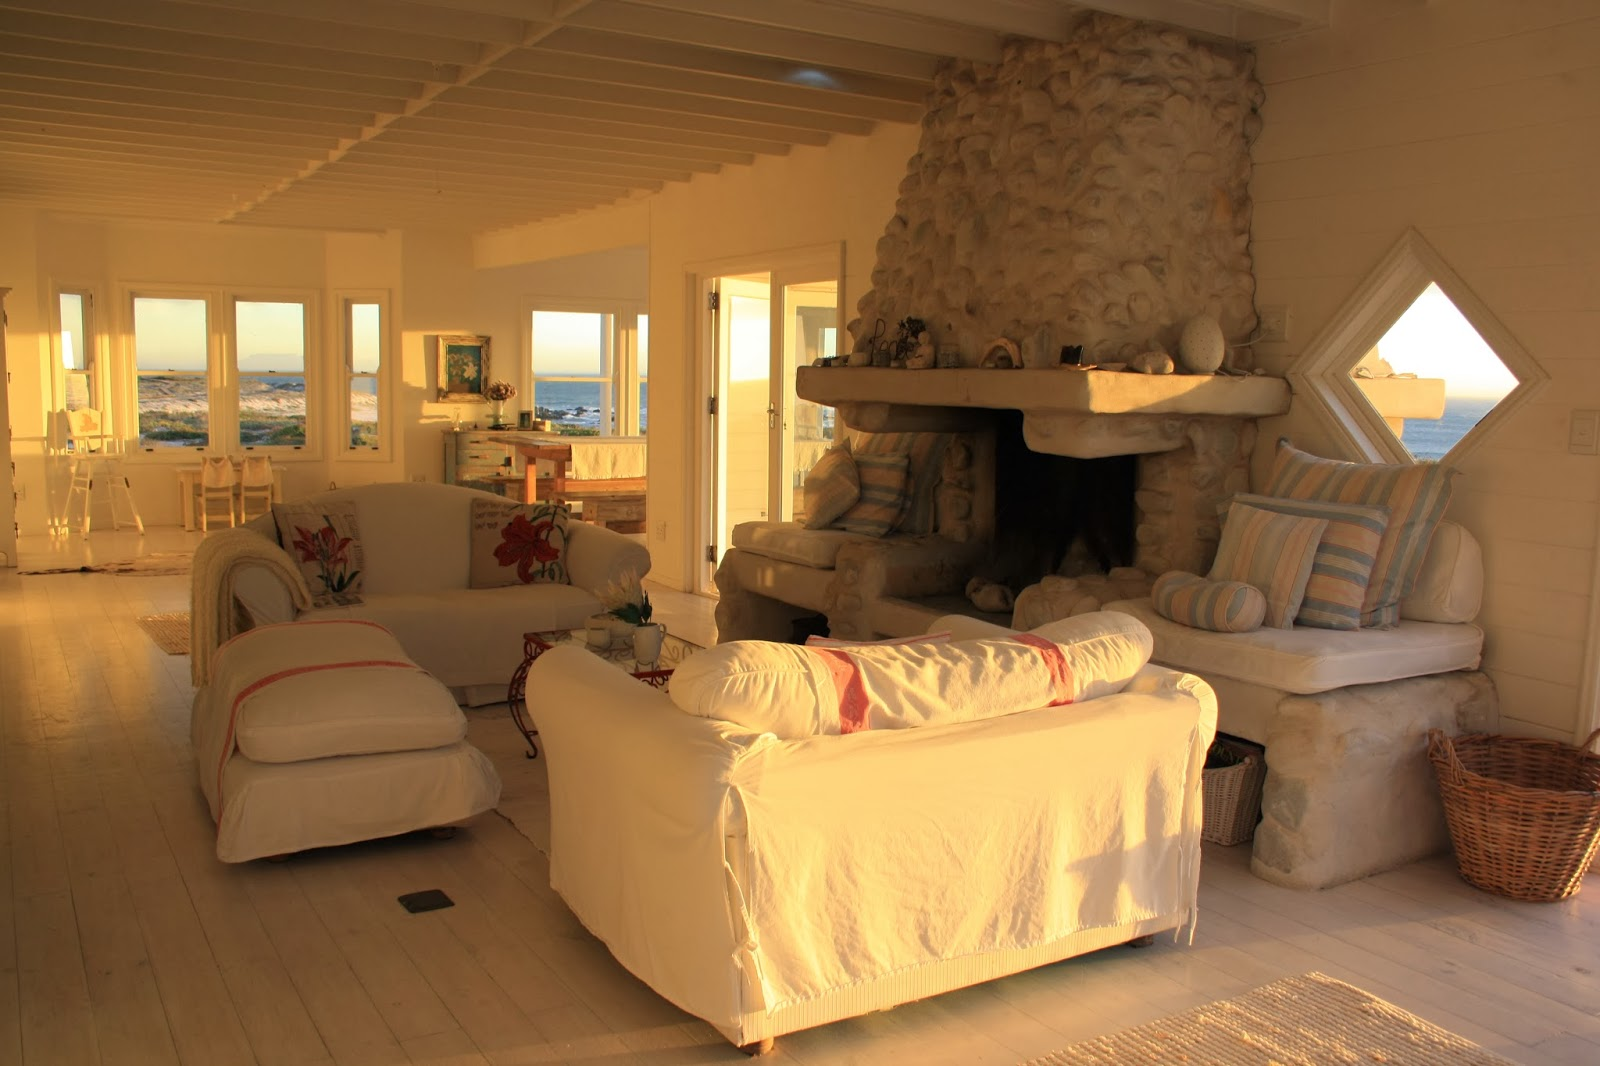 Lighthouse Bedroom Decor Characterstays The Lighthouse Yzerfontein